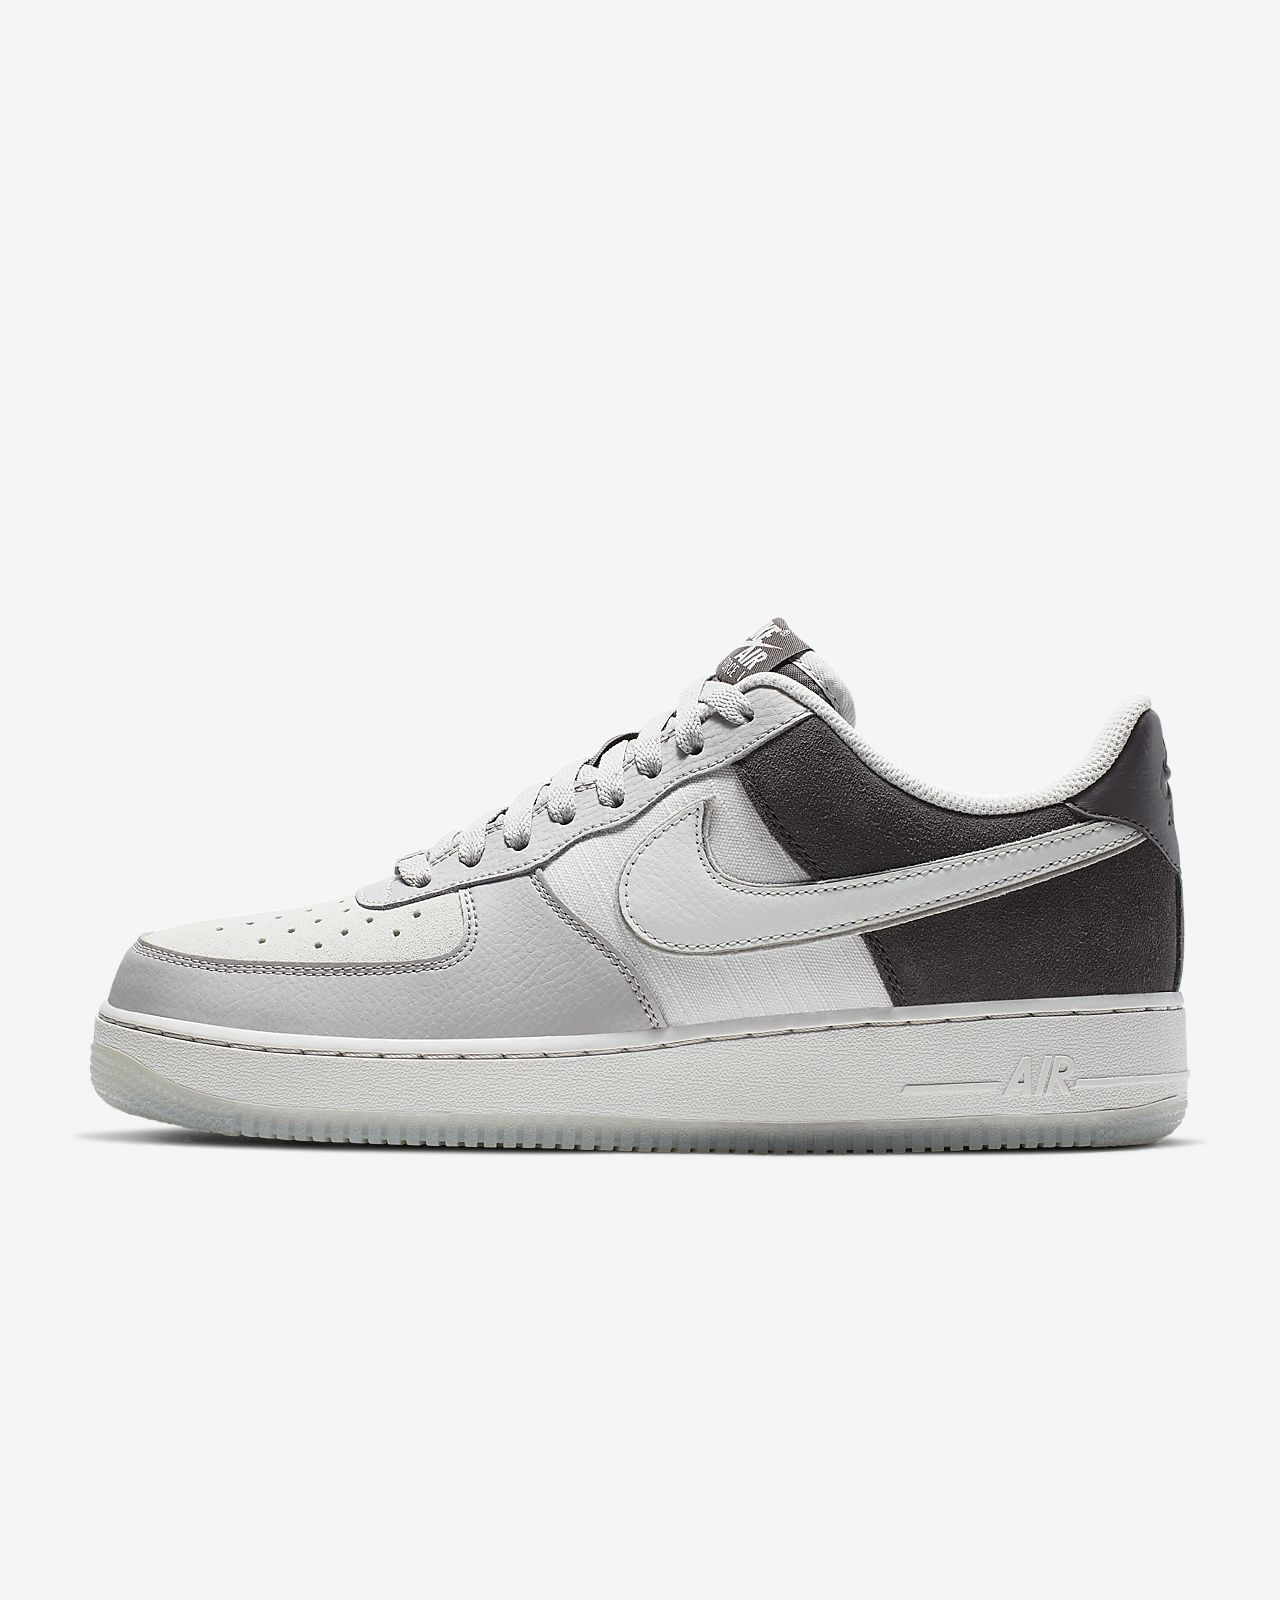 check out 148f9 ca885 ... Chaussure Nike Air Force 1  07 LV8 2 pour Homme